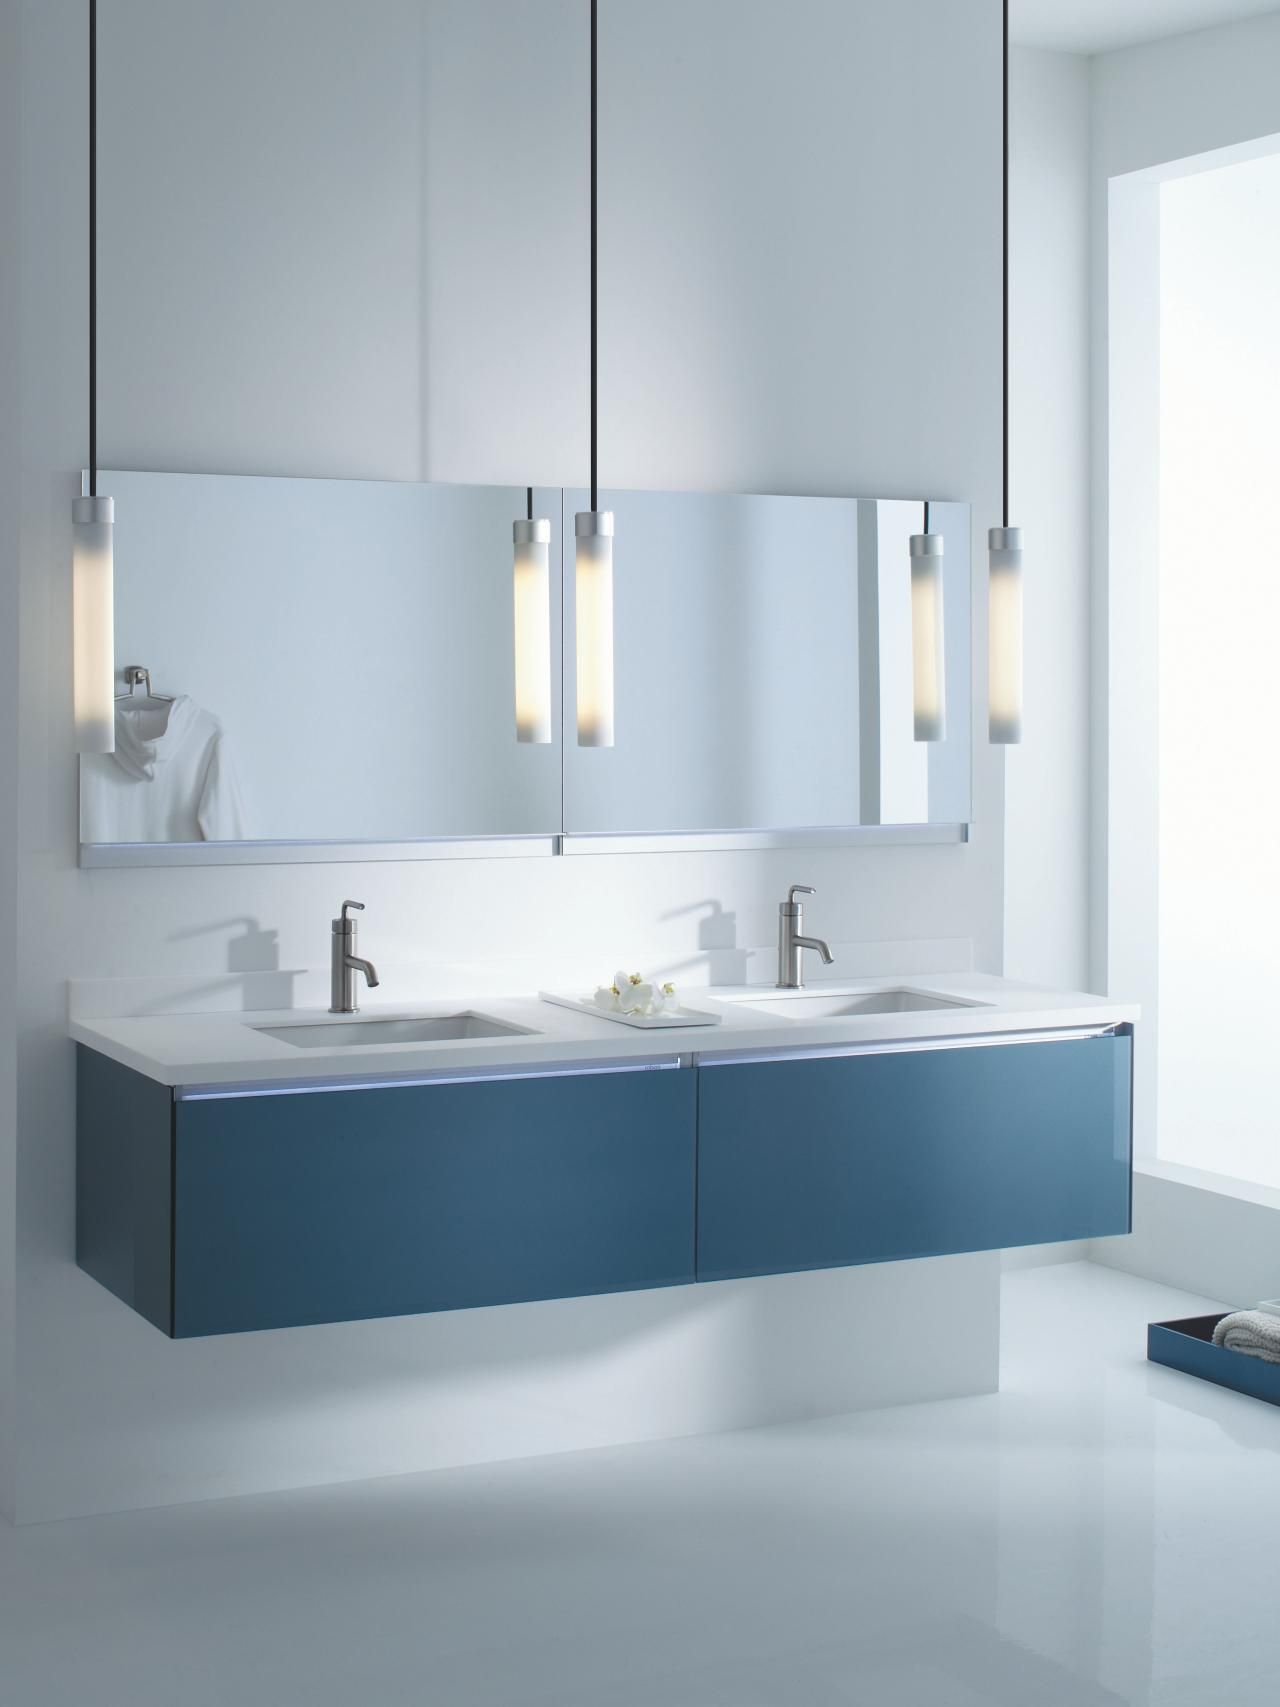 Bathroom Vanity Colors and Finishes | Modern baths, Double vanity ...